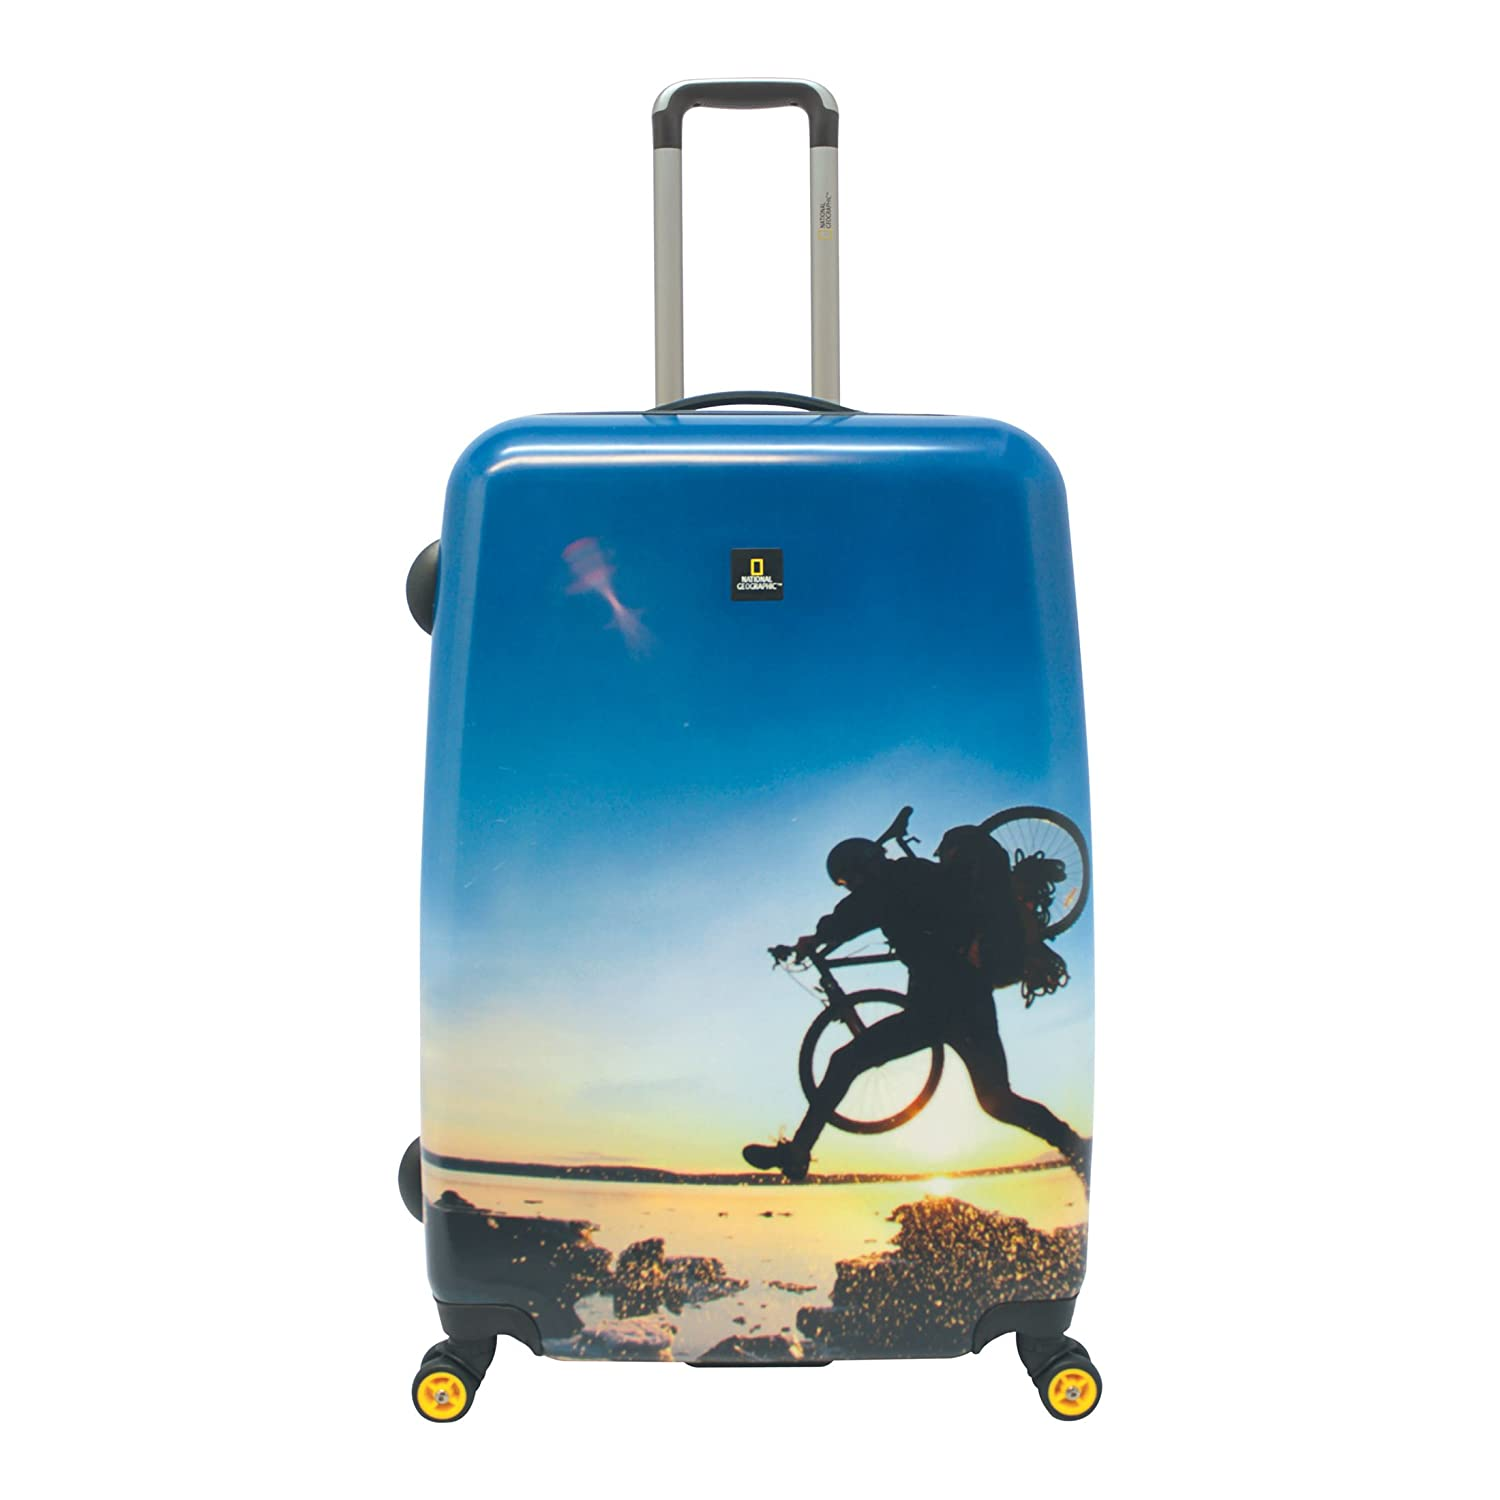 National Geographic Adventure of Life X-Biker 4-Rollen-Trolley 78 cm x-biker günstig online kaufen